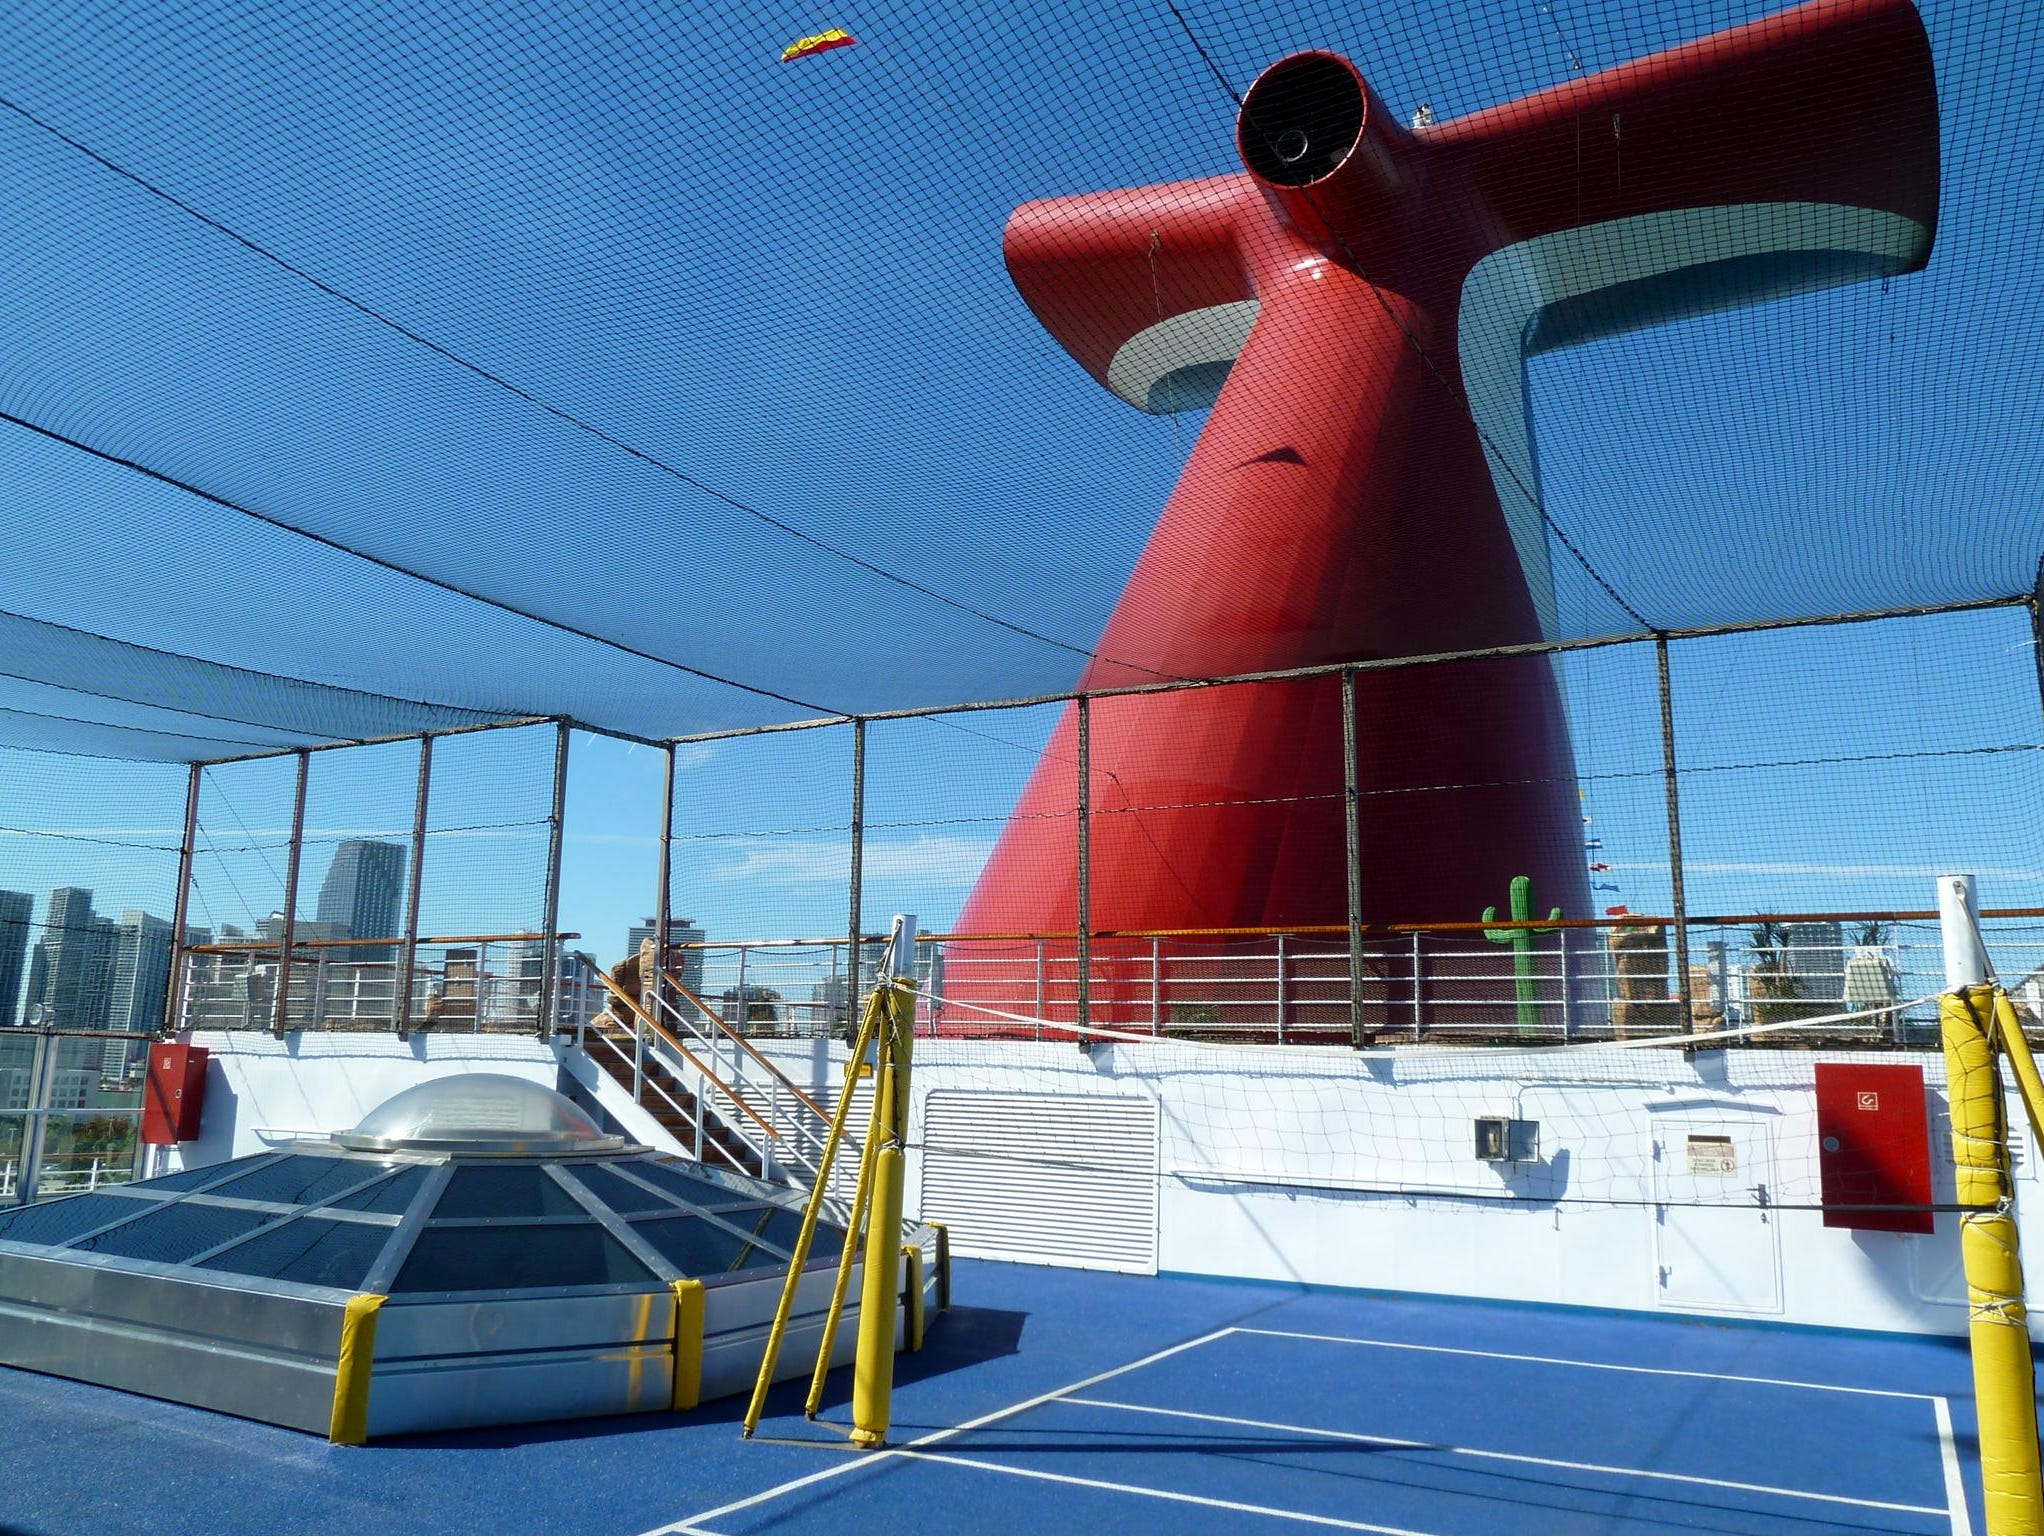 A net-enclosed basketball and volleyball court is sandwiched by the observation deck and the mini-golf course in between aft Decks 12 and 11.